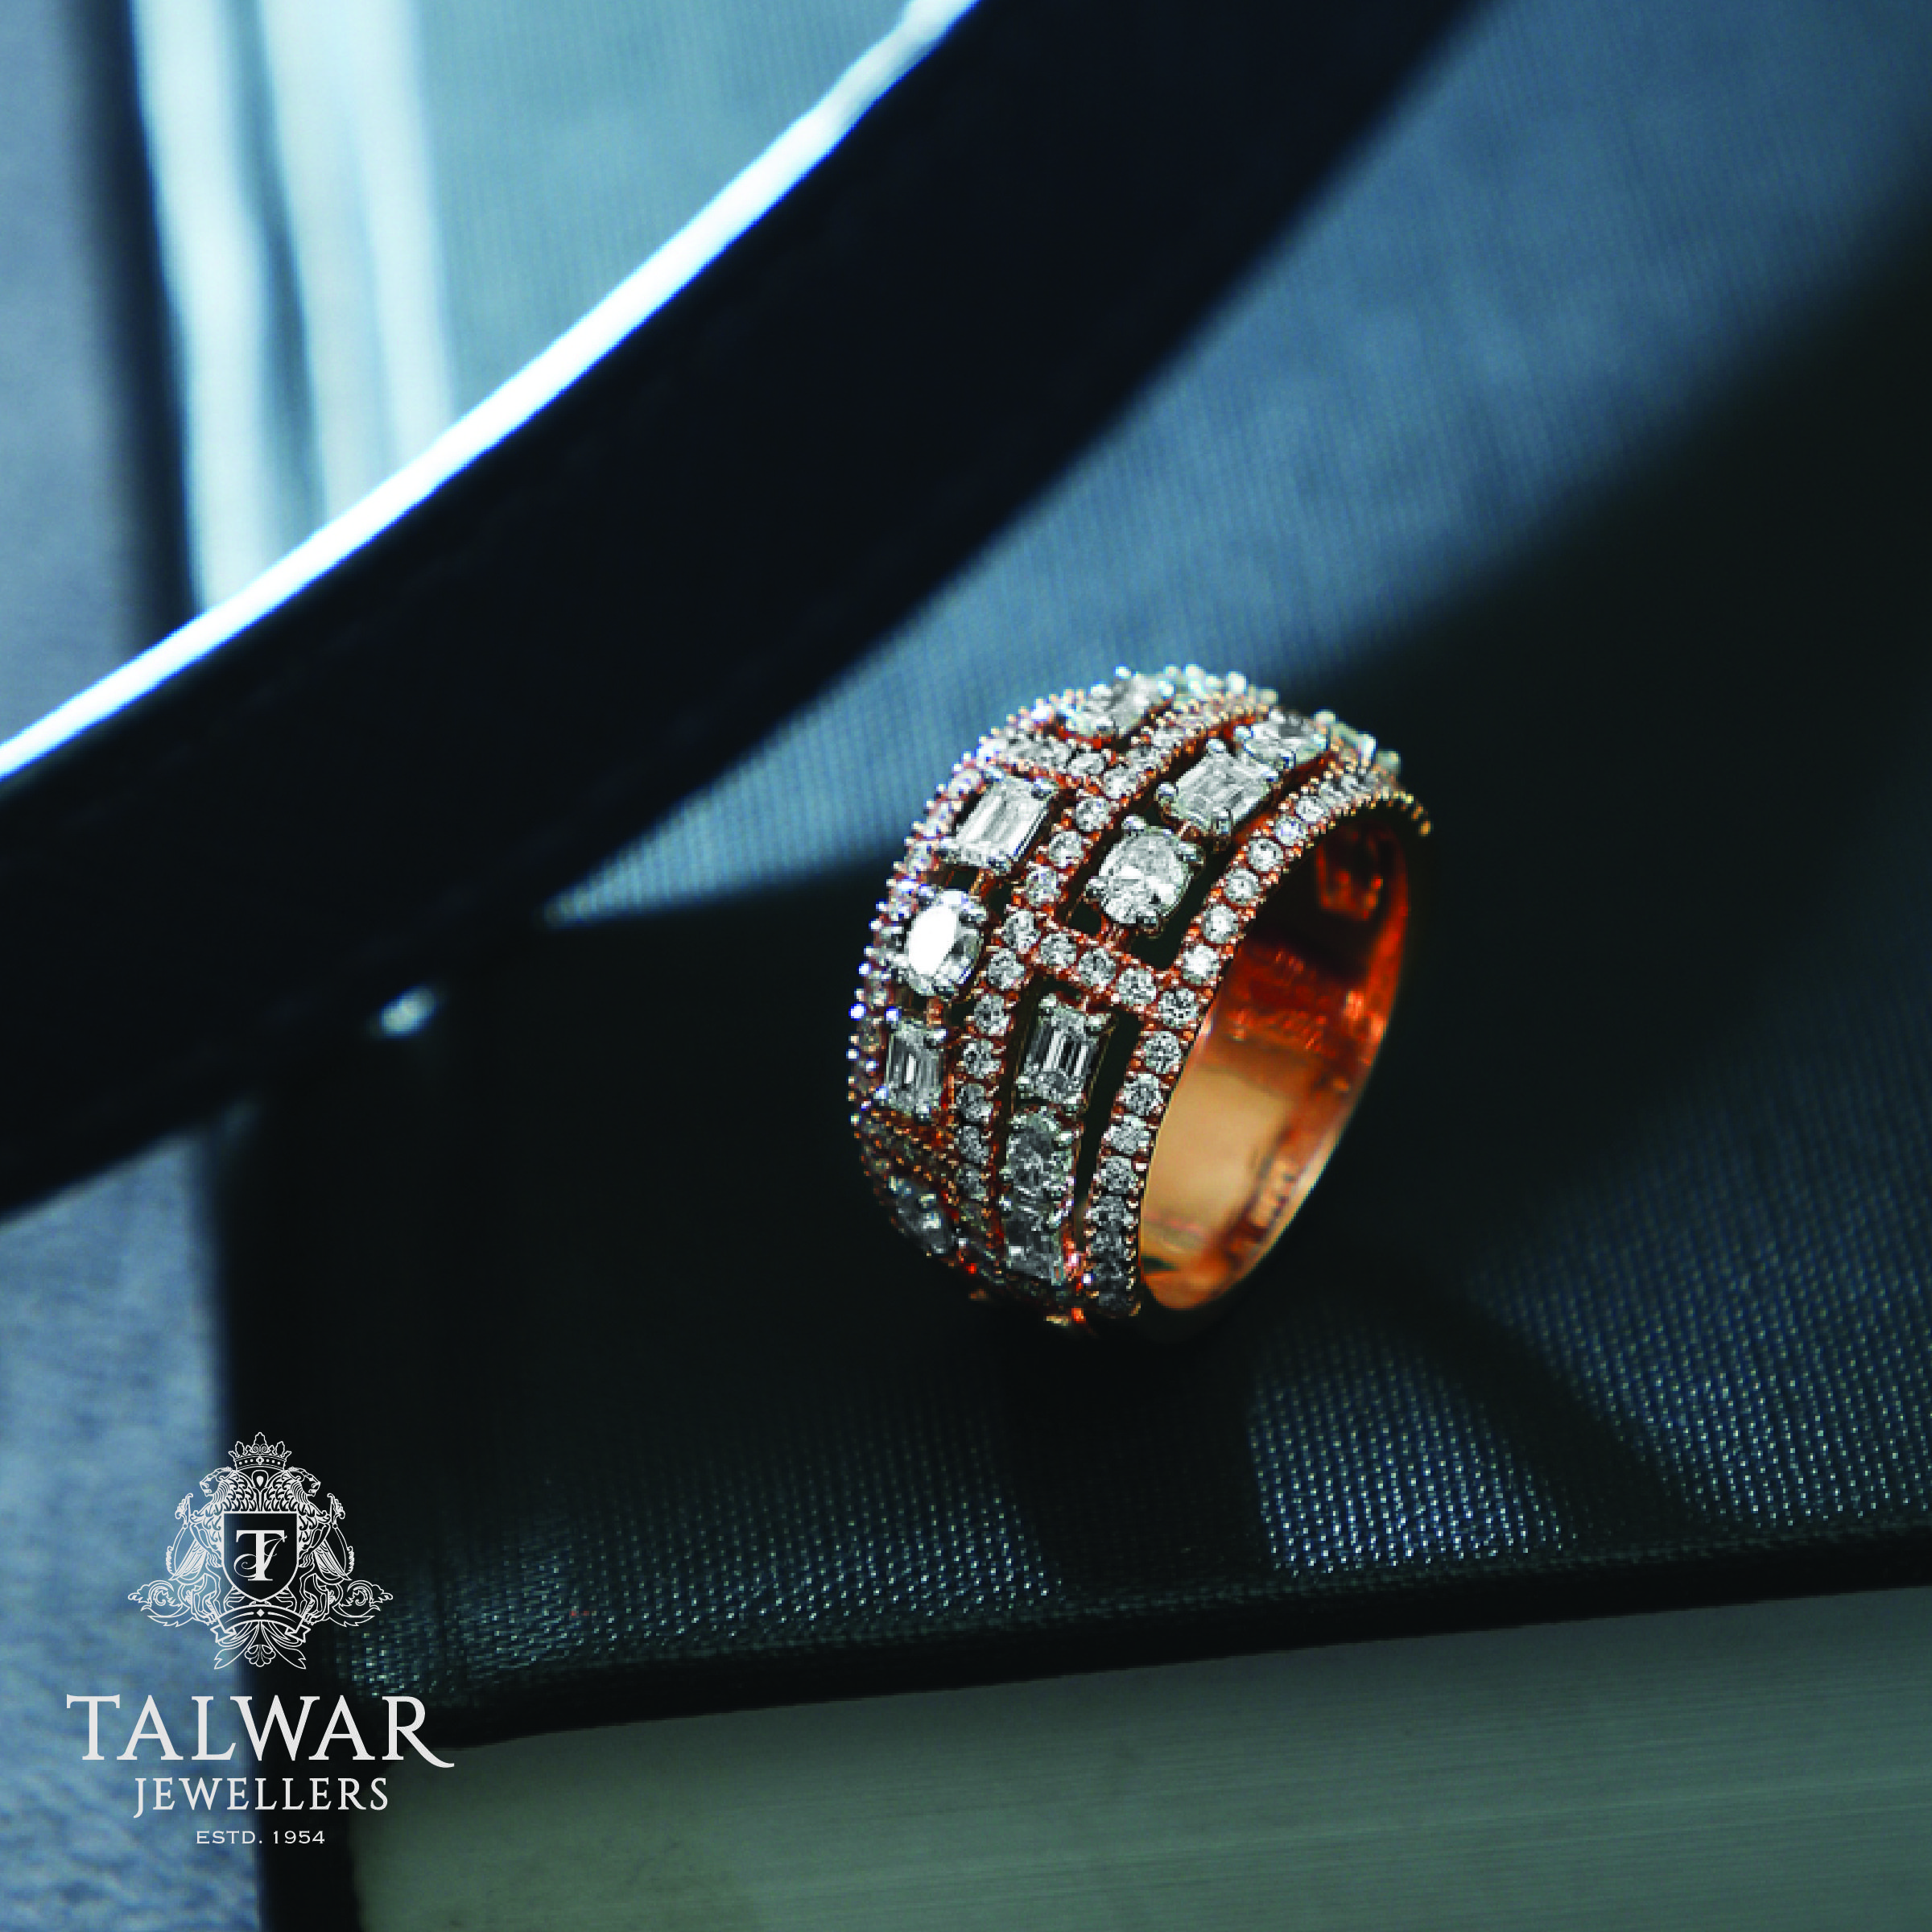 Founded in 1954 talwar jewellers is one of the oldest and